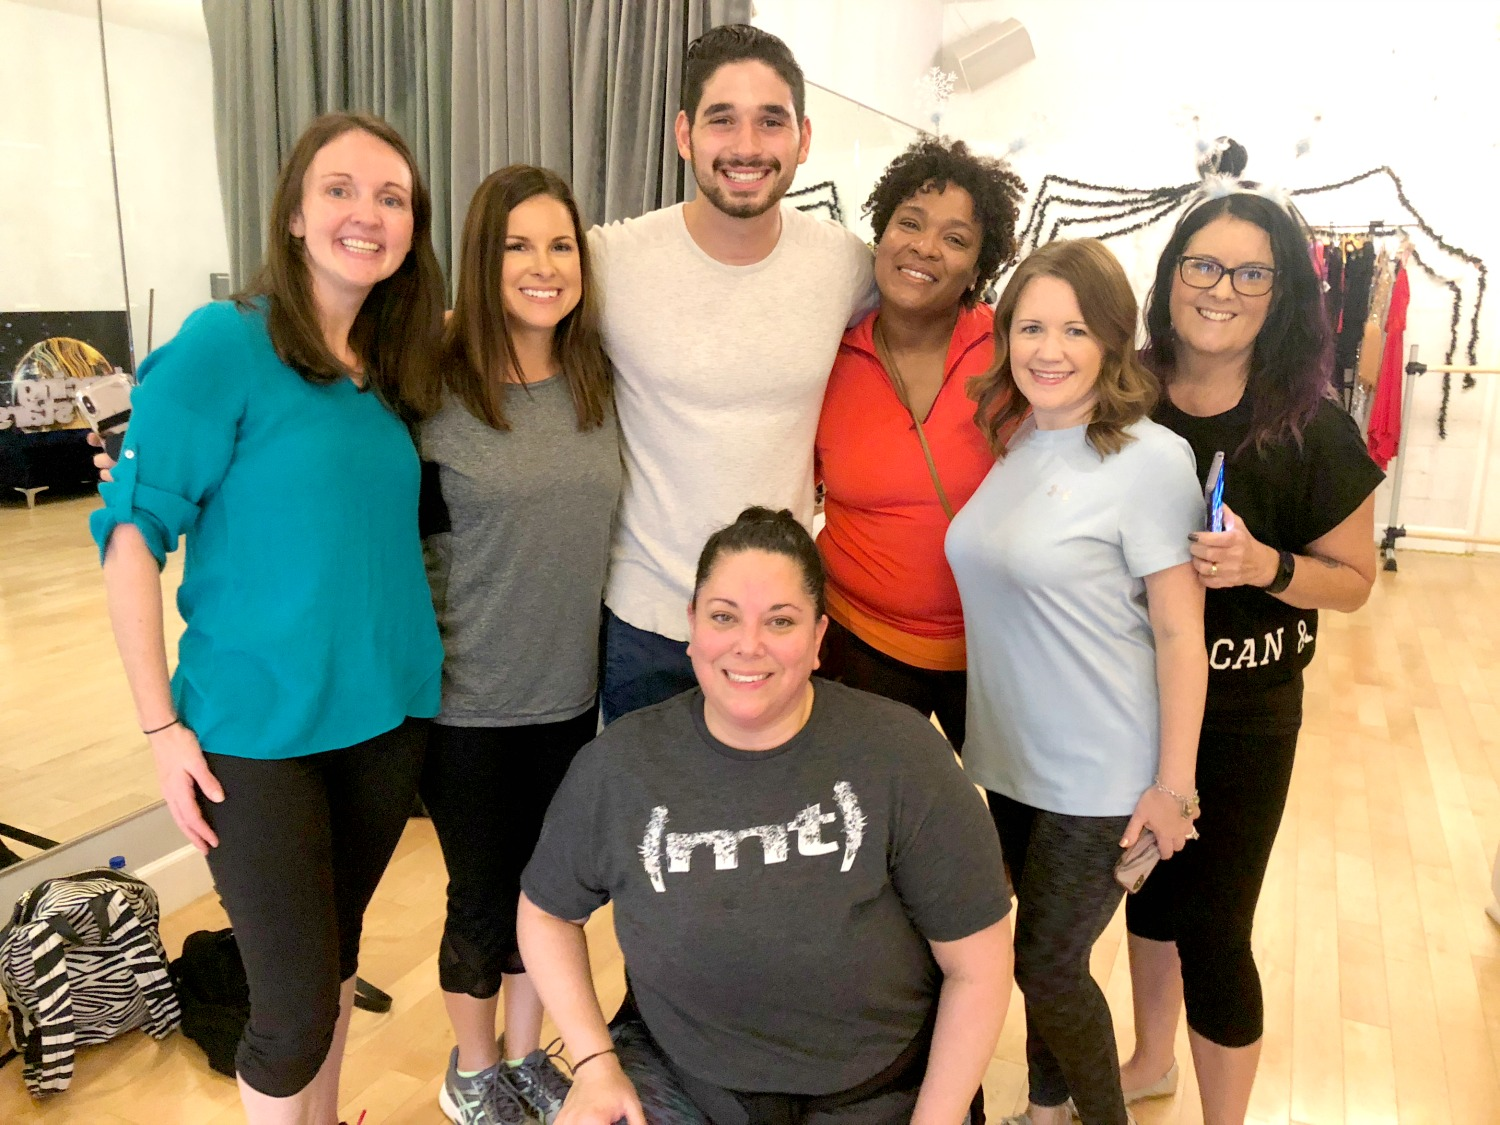 DWTS Dance Lesson Group